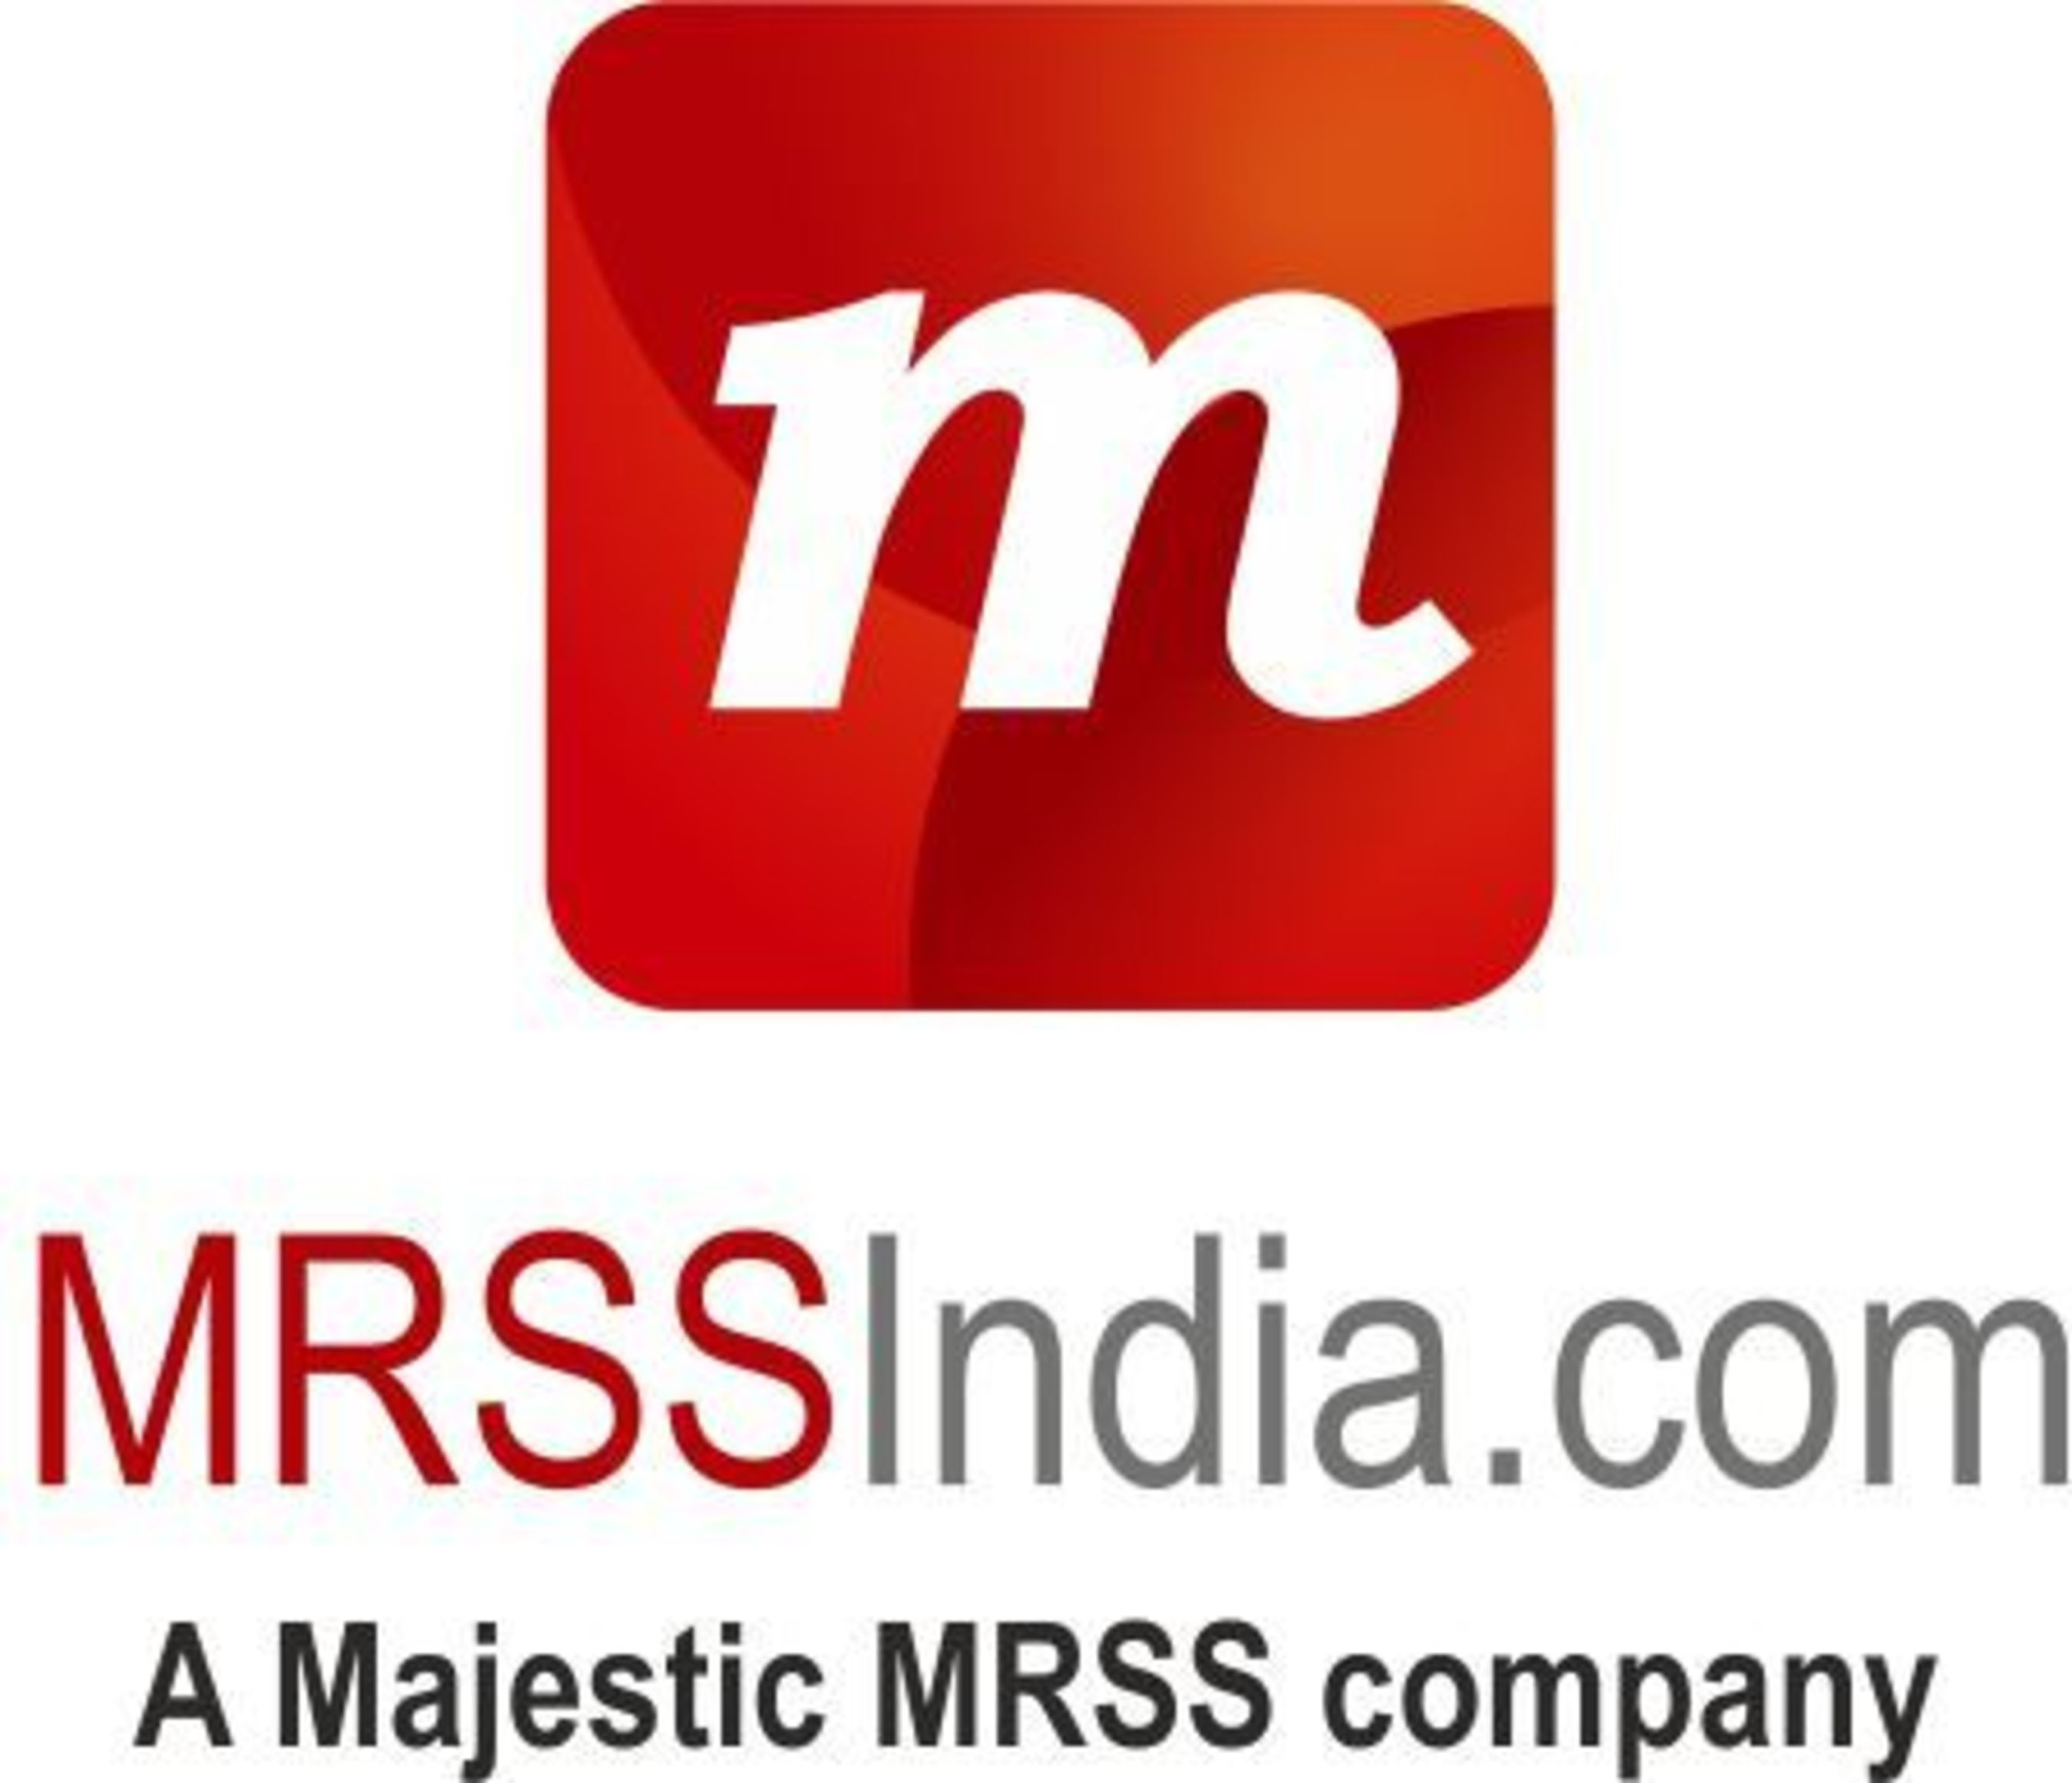 MRSS INDIA is now a Member of Global Digital Insight Network